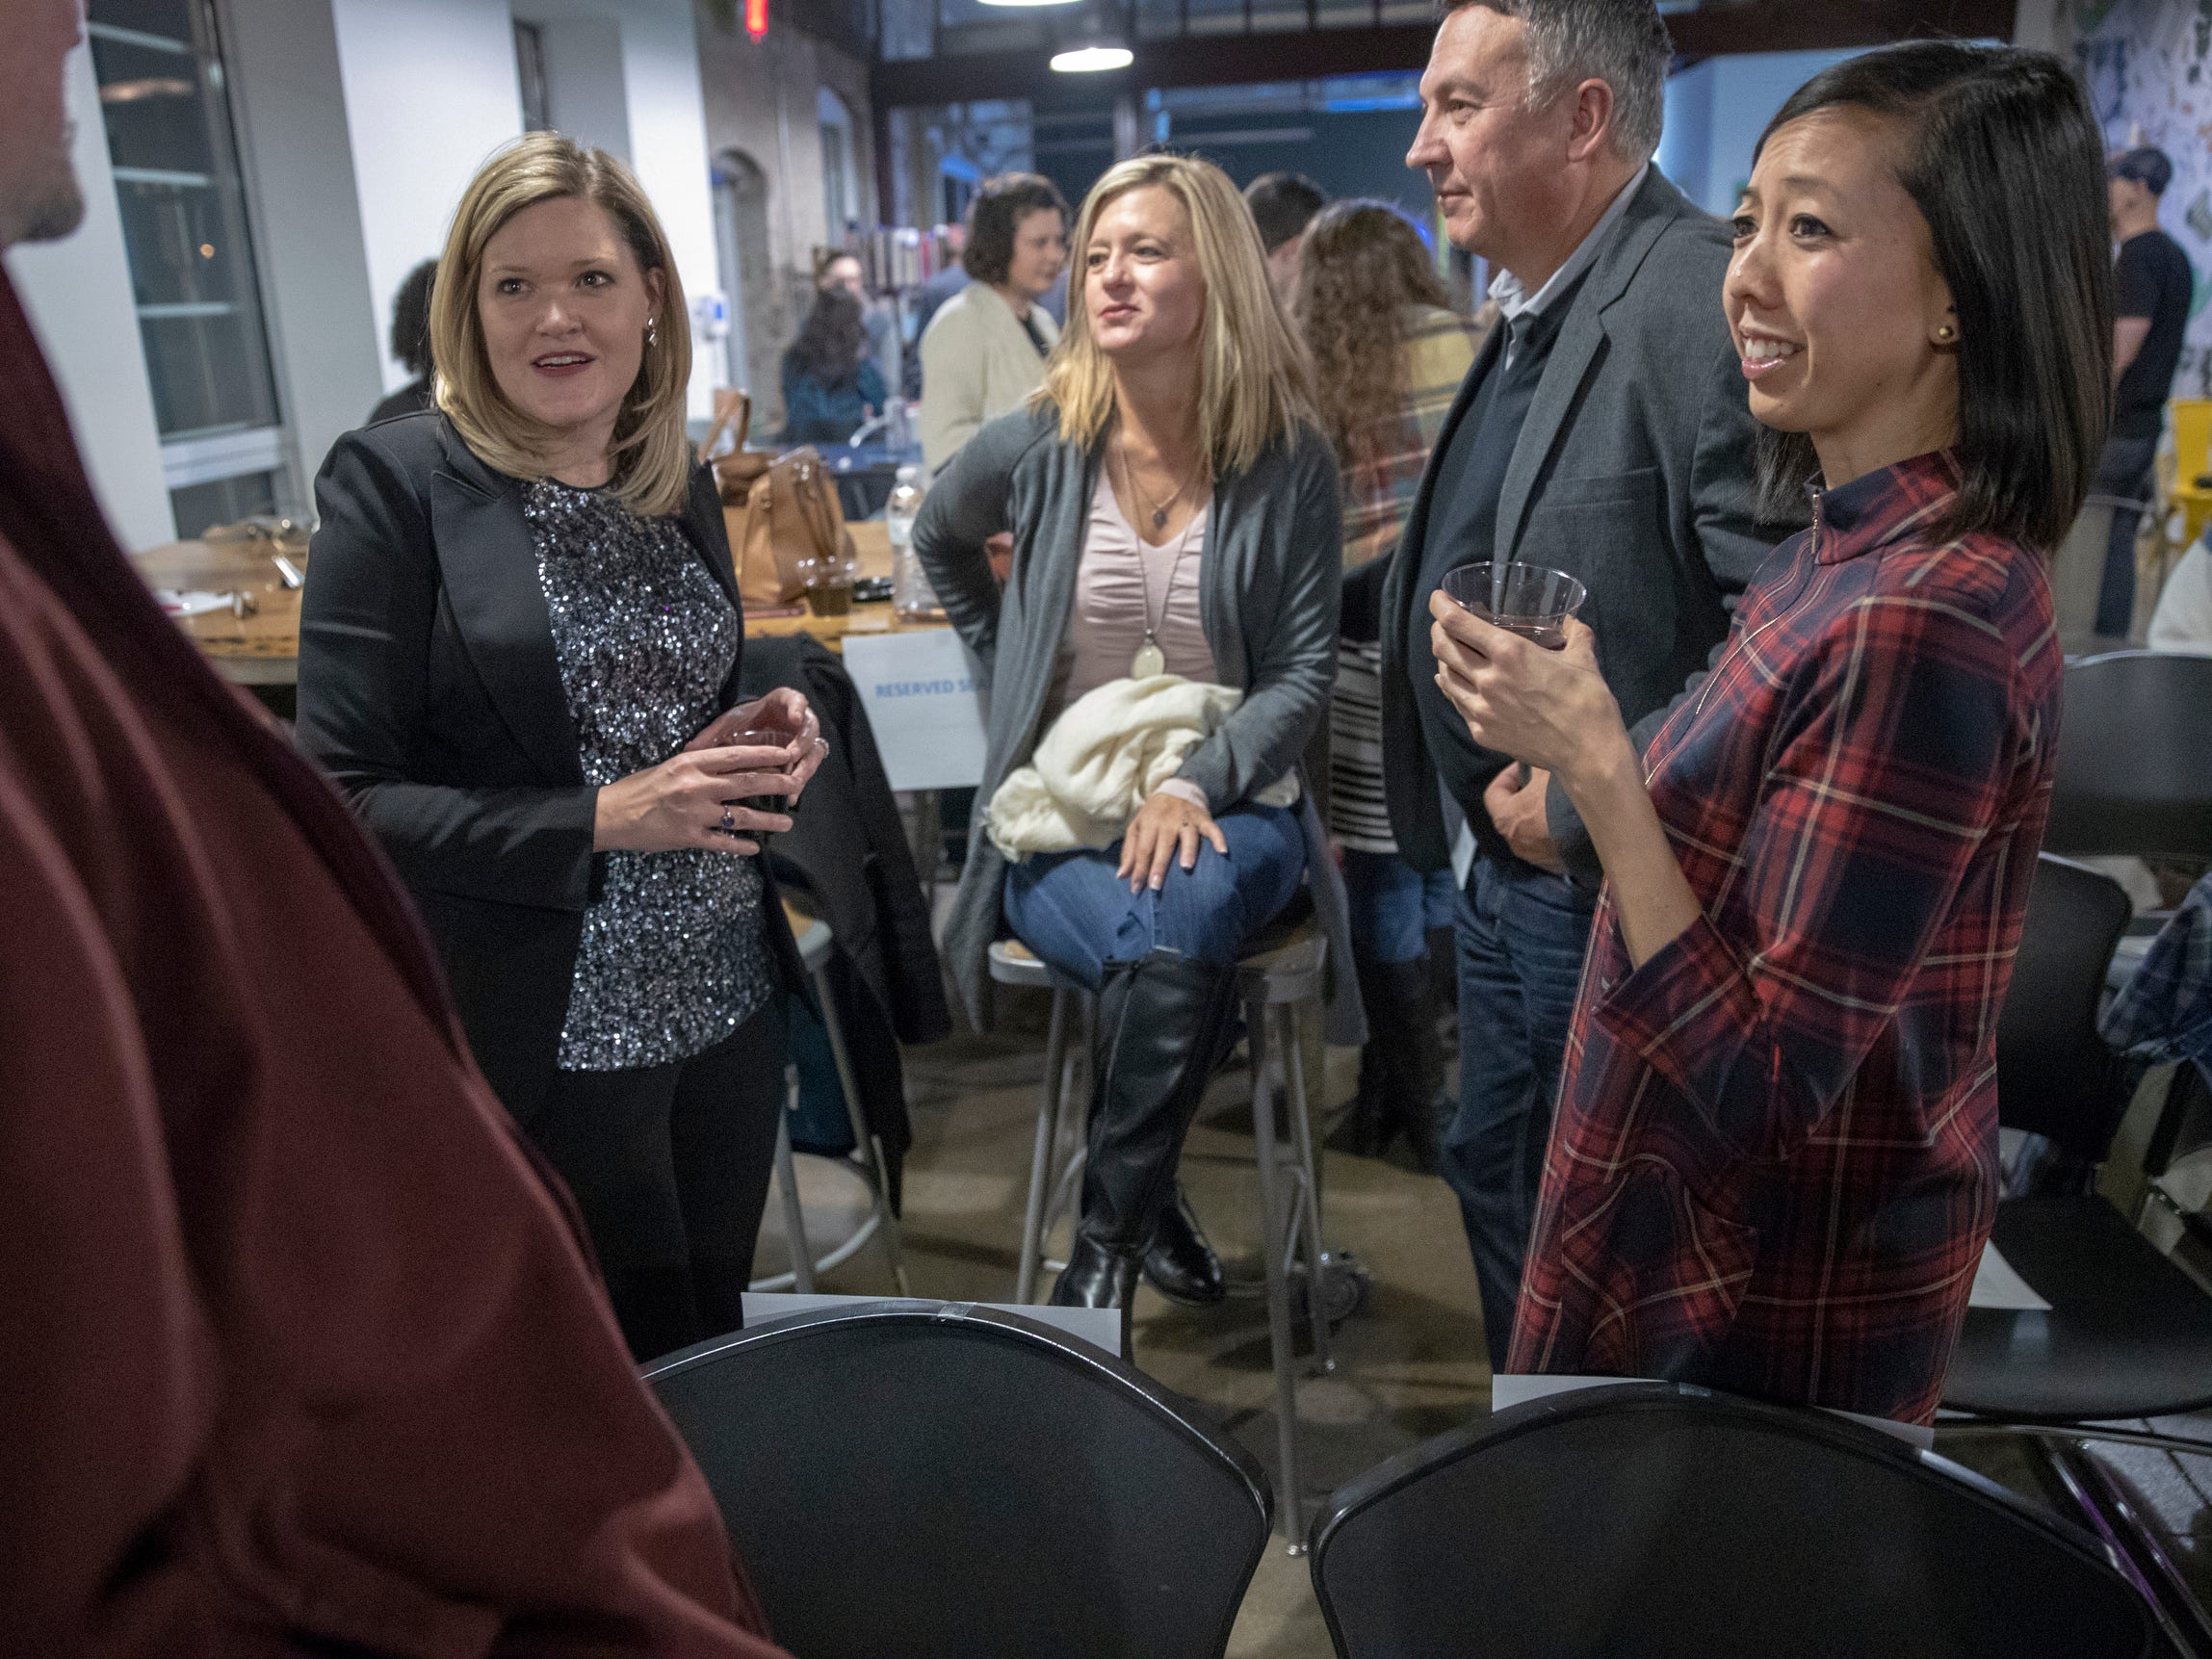 Images from IndyStar's Storytellers event featuring stories about music, at Tube Factory Artspace, Indianapolis, Tuesday, Dec. 4, 2018.